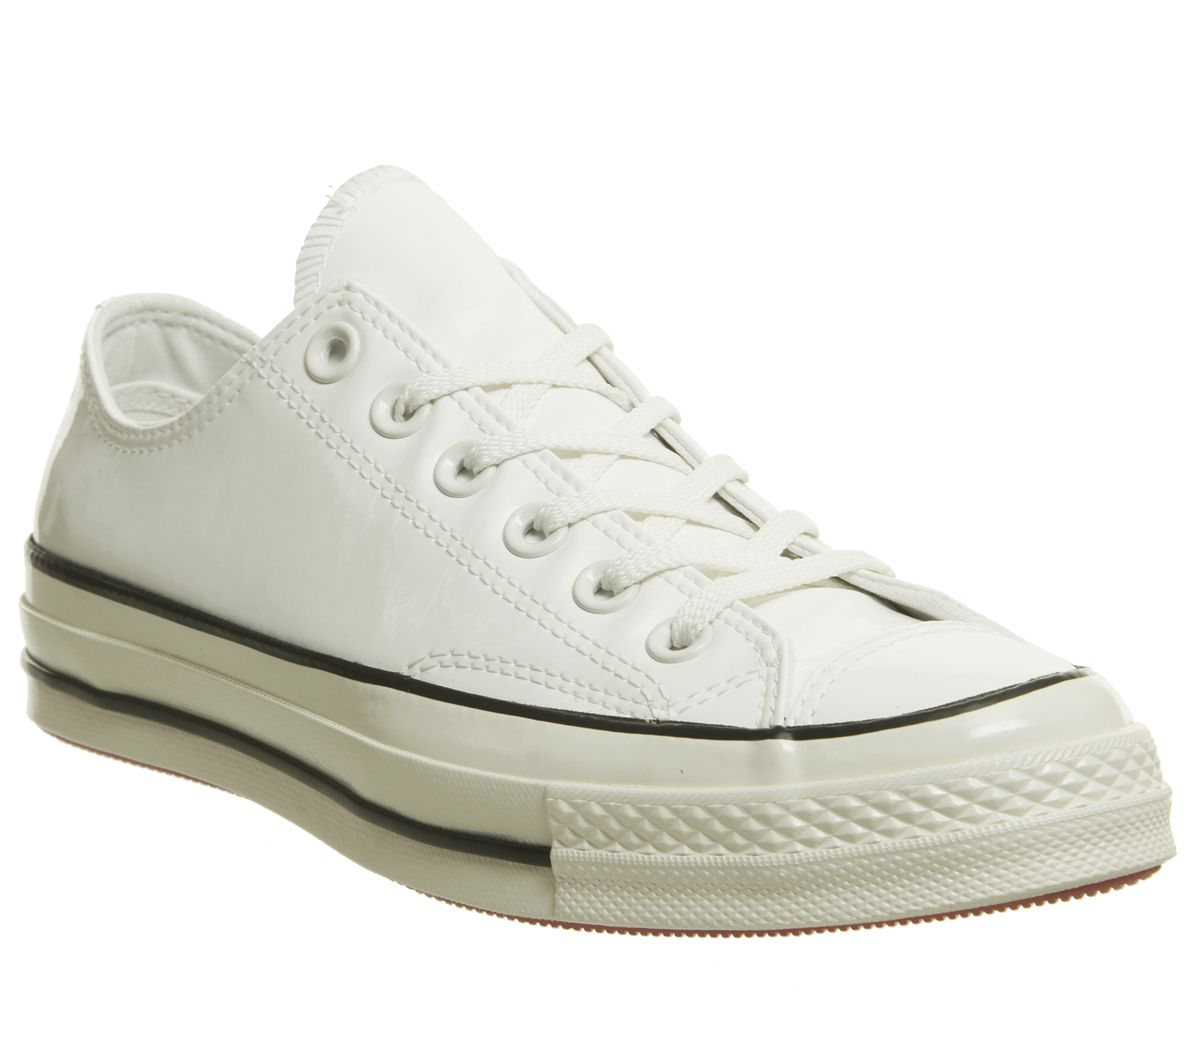 0bd33b803212 Converse All Star Ox 70 s Trainers Vintage White Black Egret Patent ...